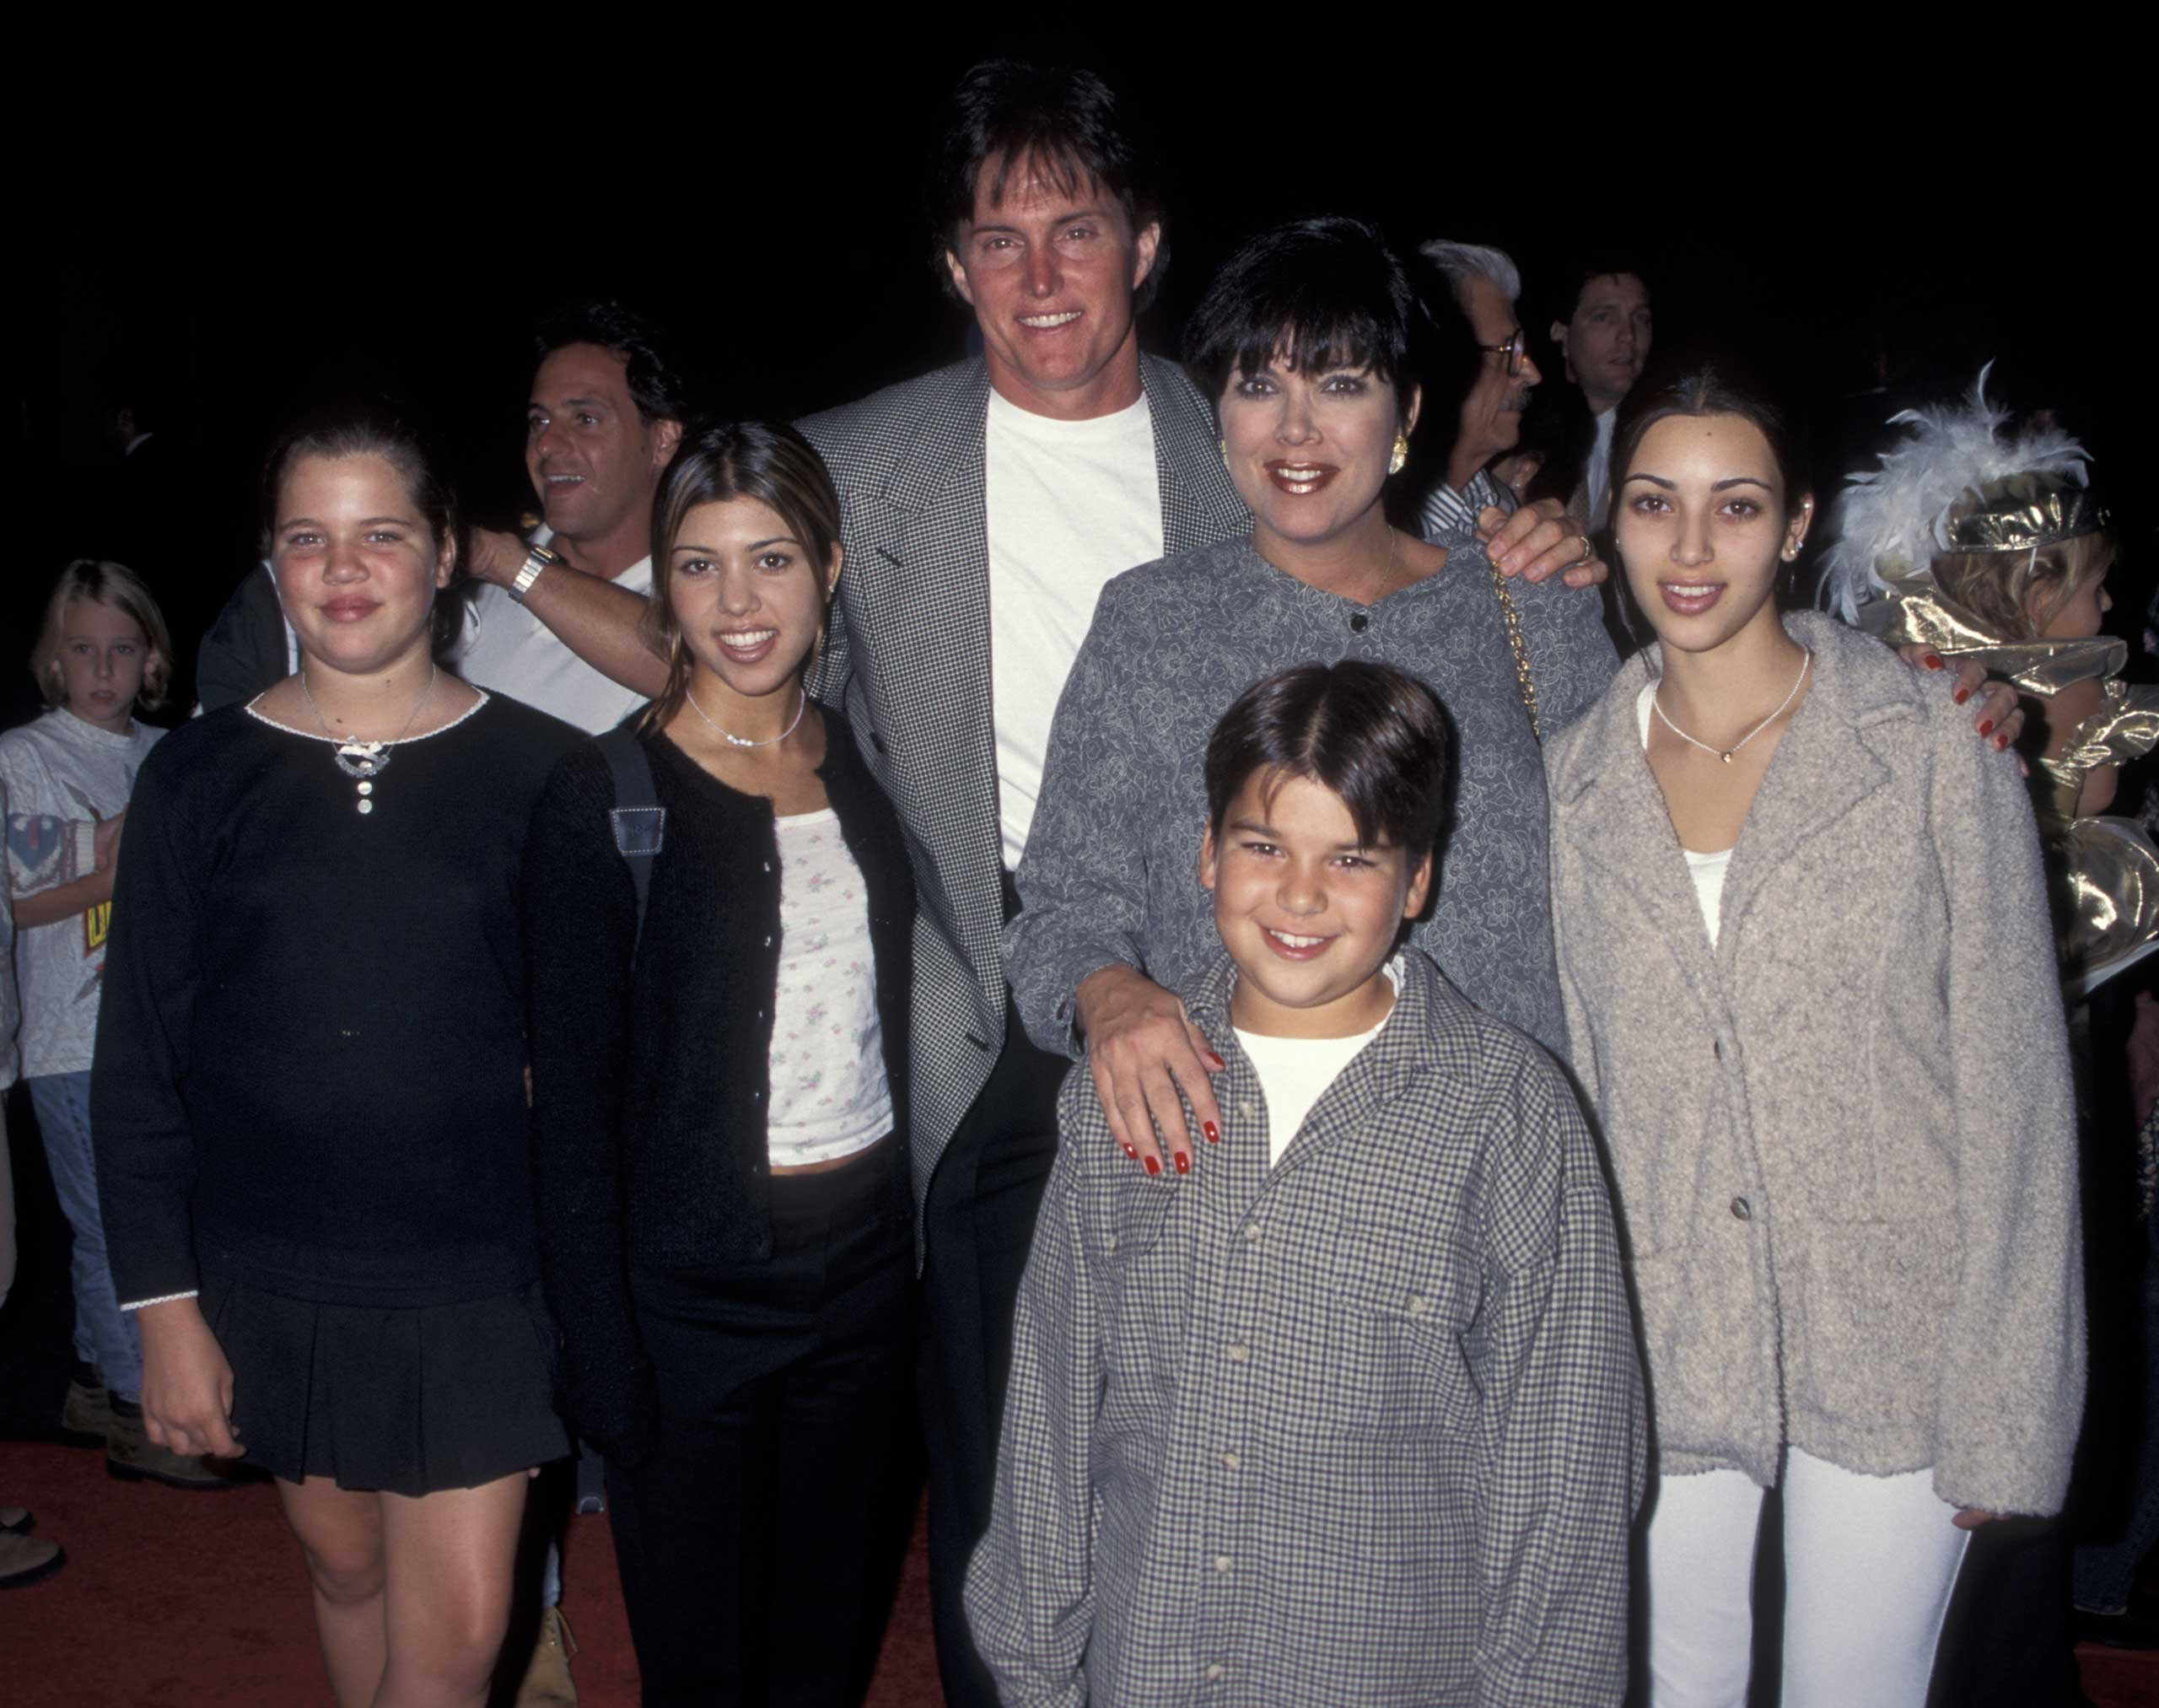 The family poses at an event in 1995, the year Jenner and Kris welcomed the first of their two children together, Kendall Jenner.